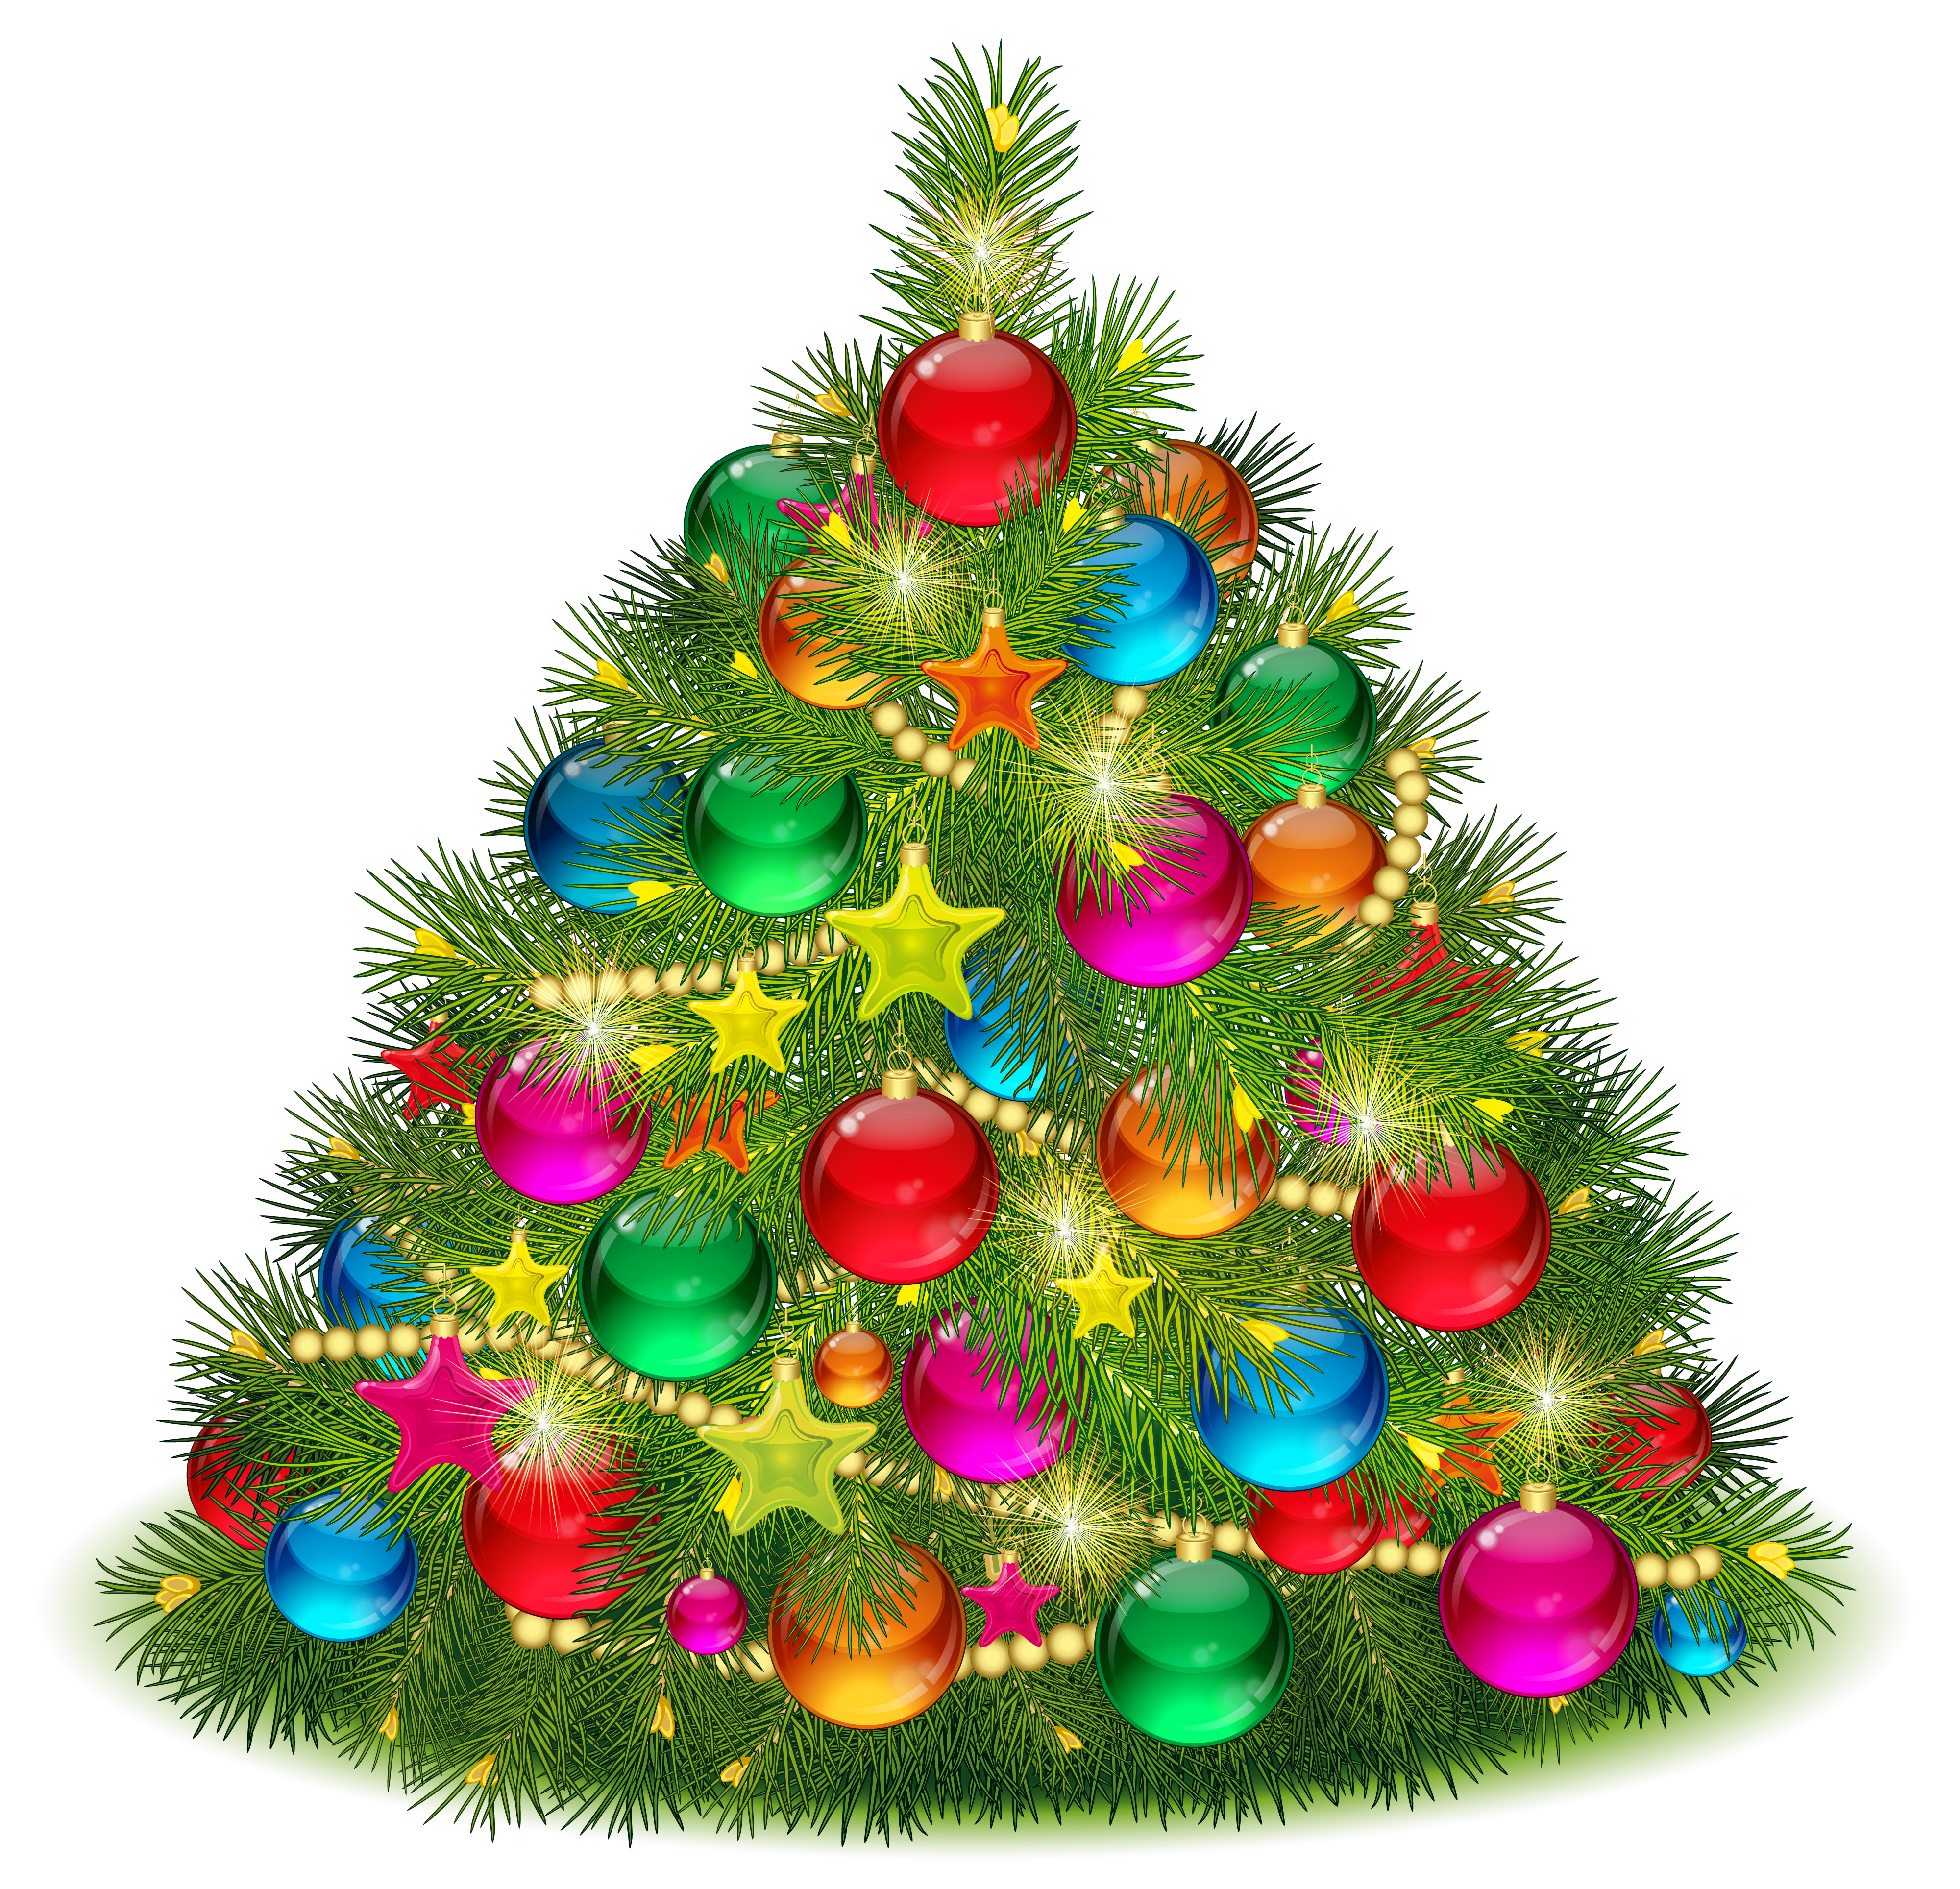 Free clipart xmas tree image freeuse stock 28+ Collection of Christmas Tree Decorating Clipart | High quality ... image freeuse stock